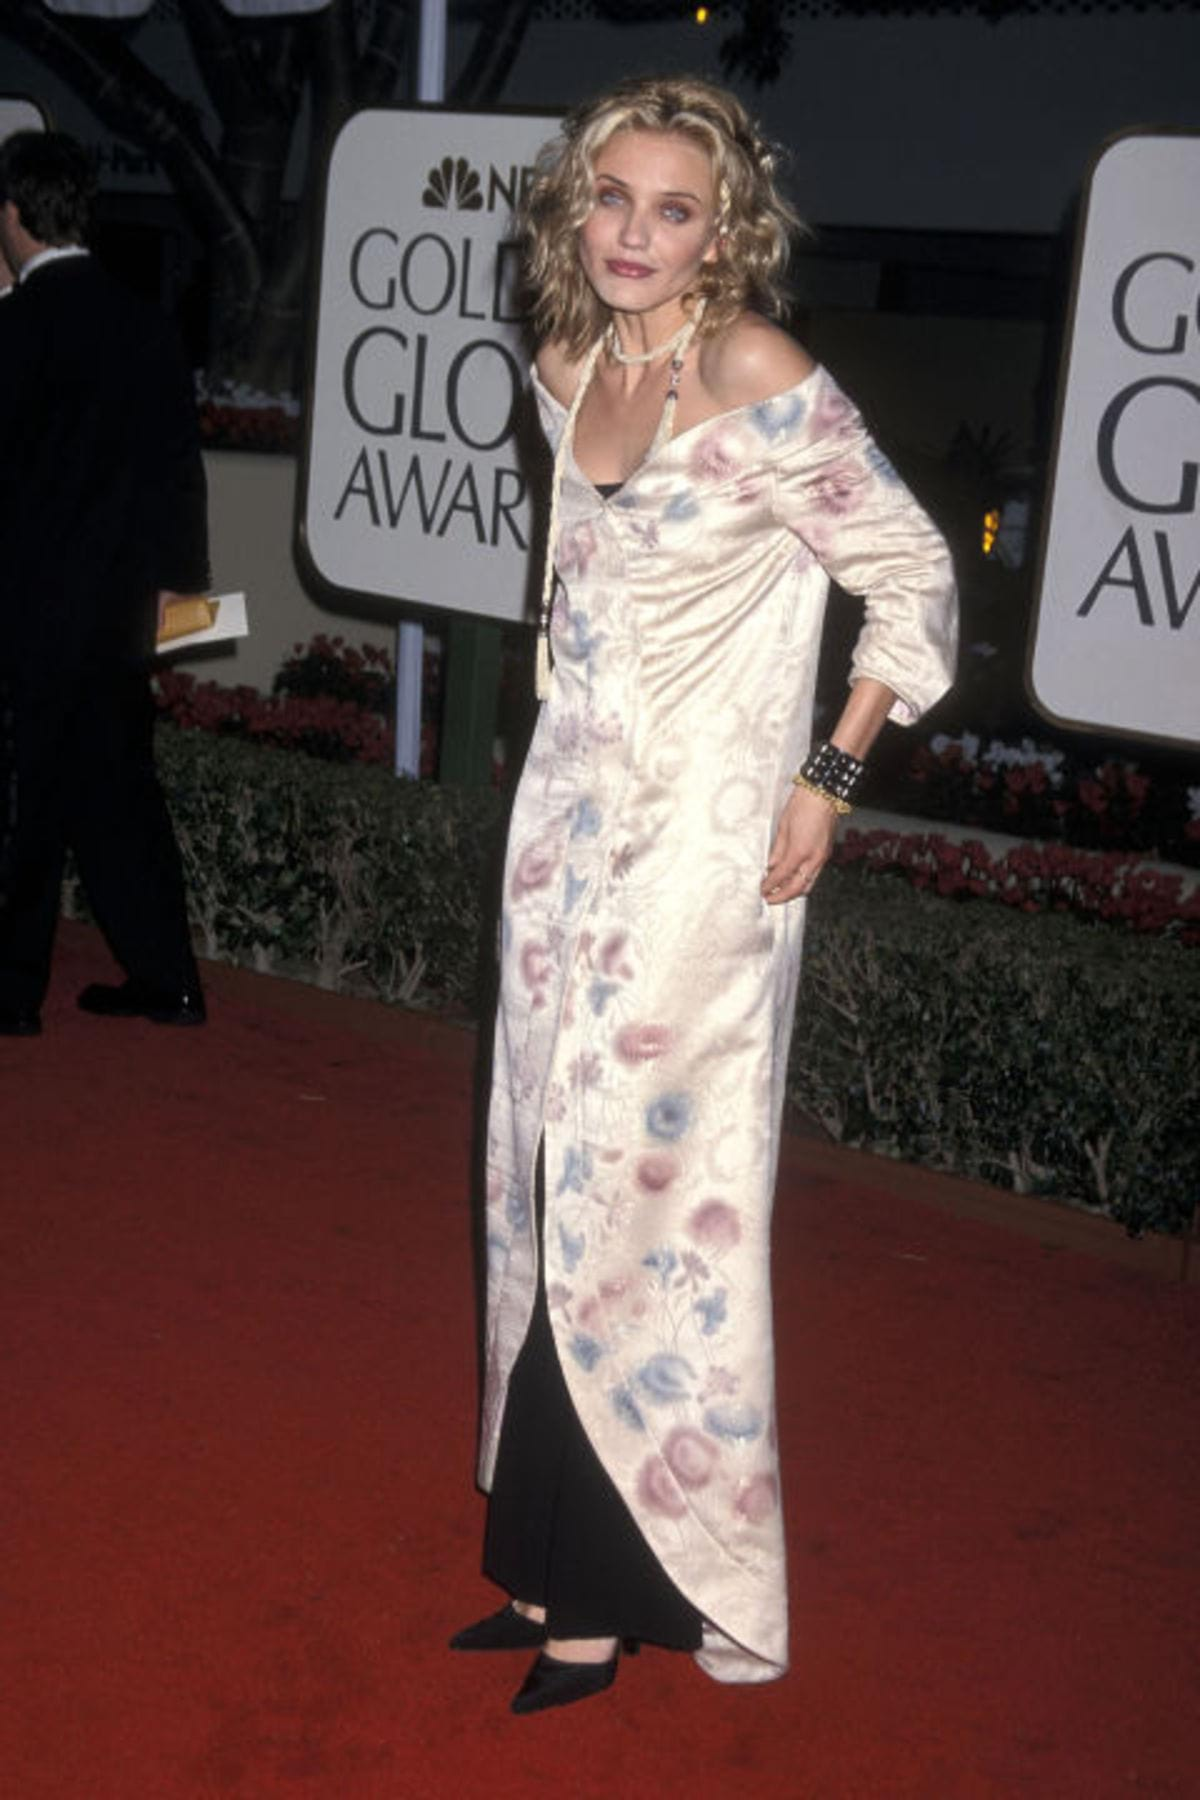 hbz-worst-gg-dresses-1999-gettyimages-109177918